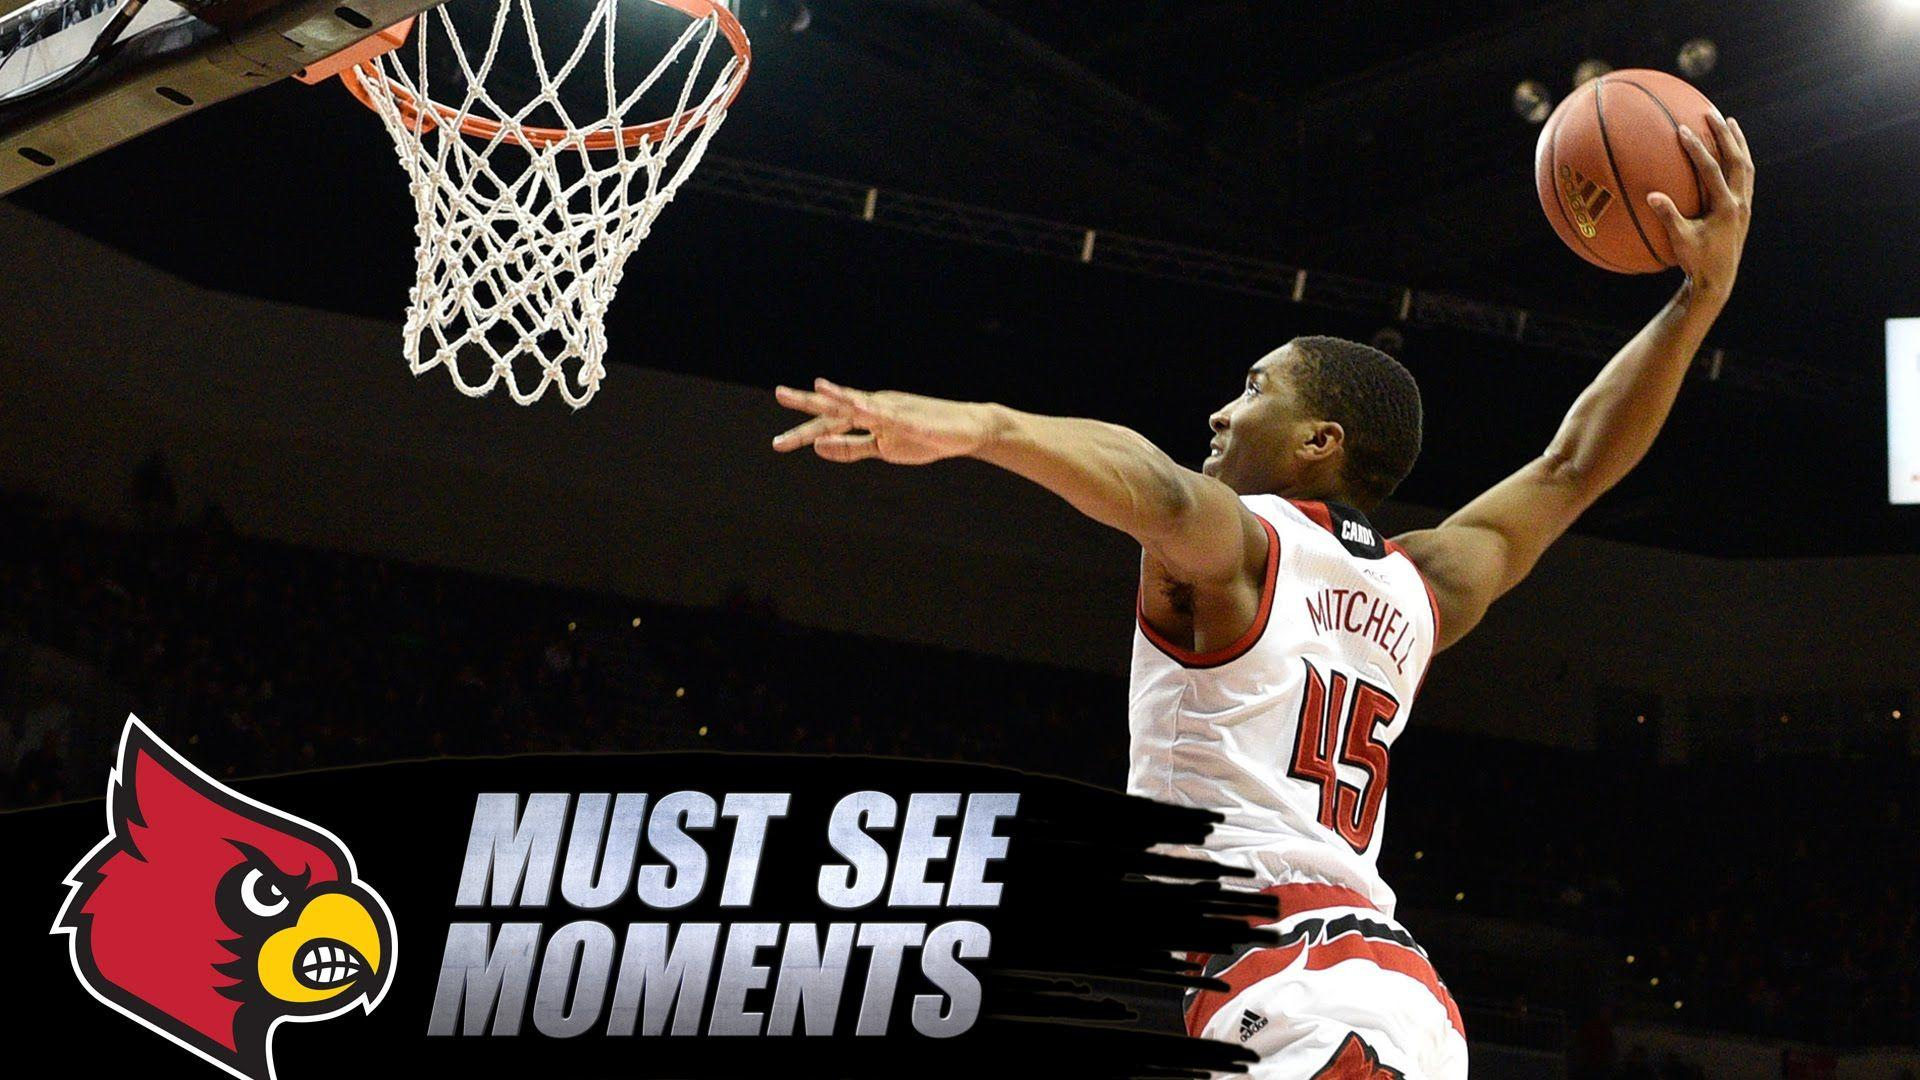 Louisville's Donovan Mitchell Winds Up For Huge Alley Oop Dunk